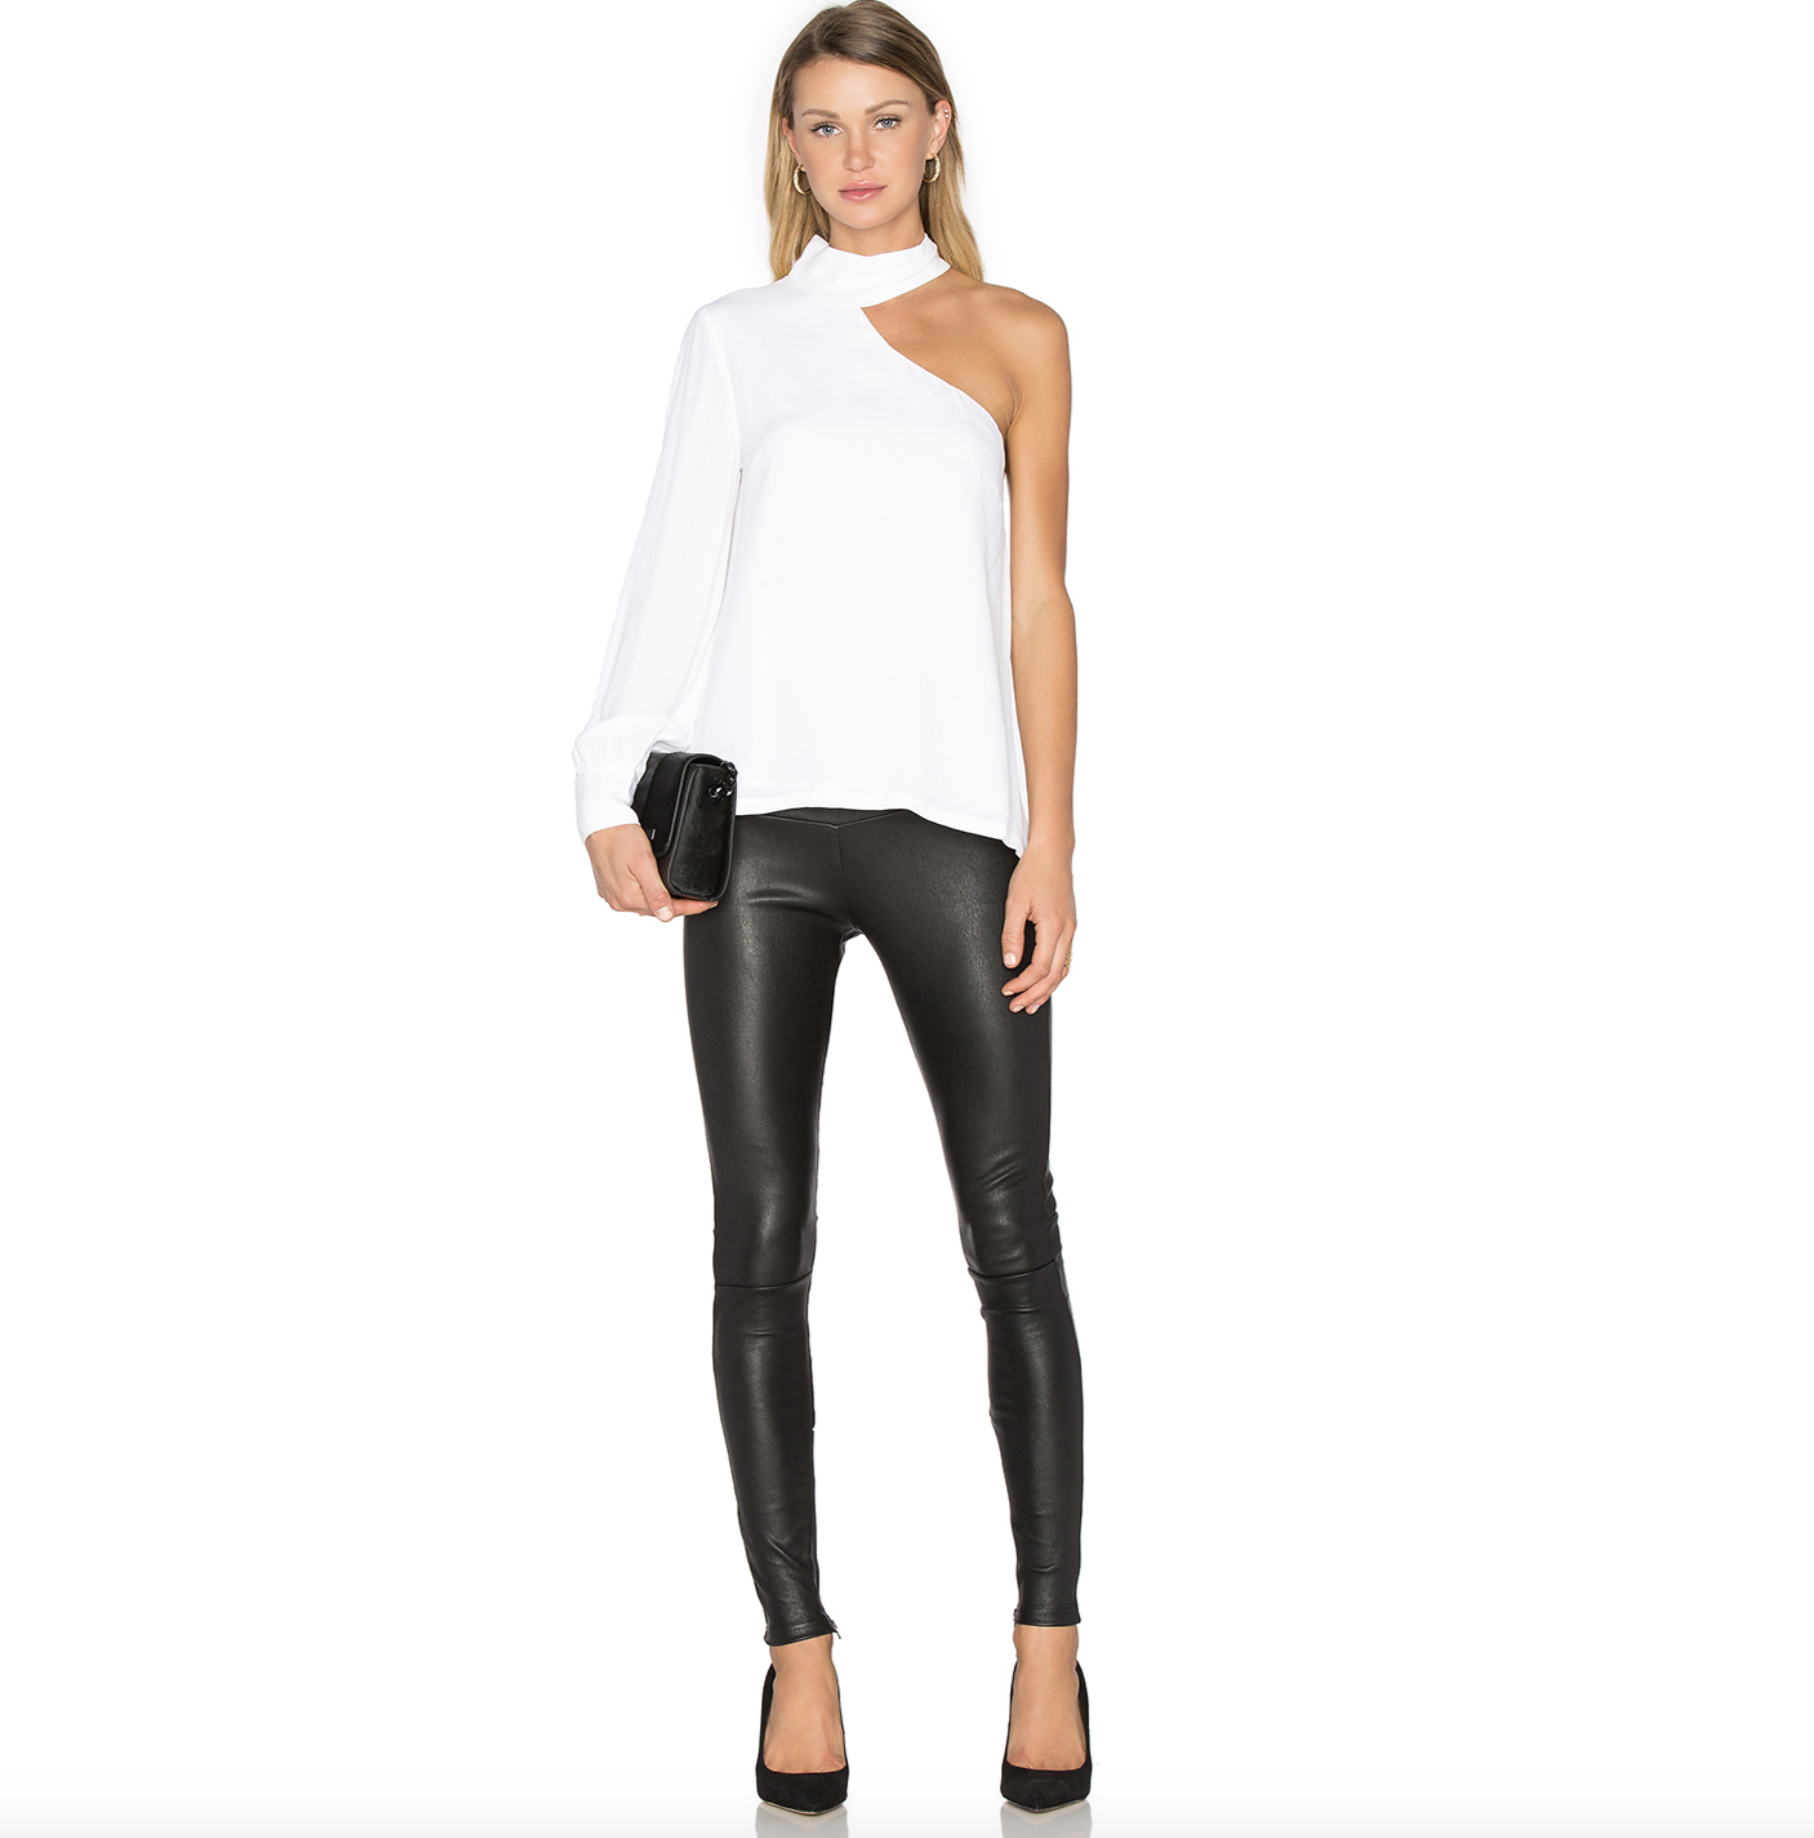 Elliat cubism top